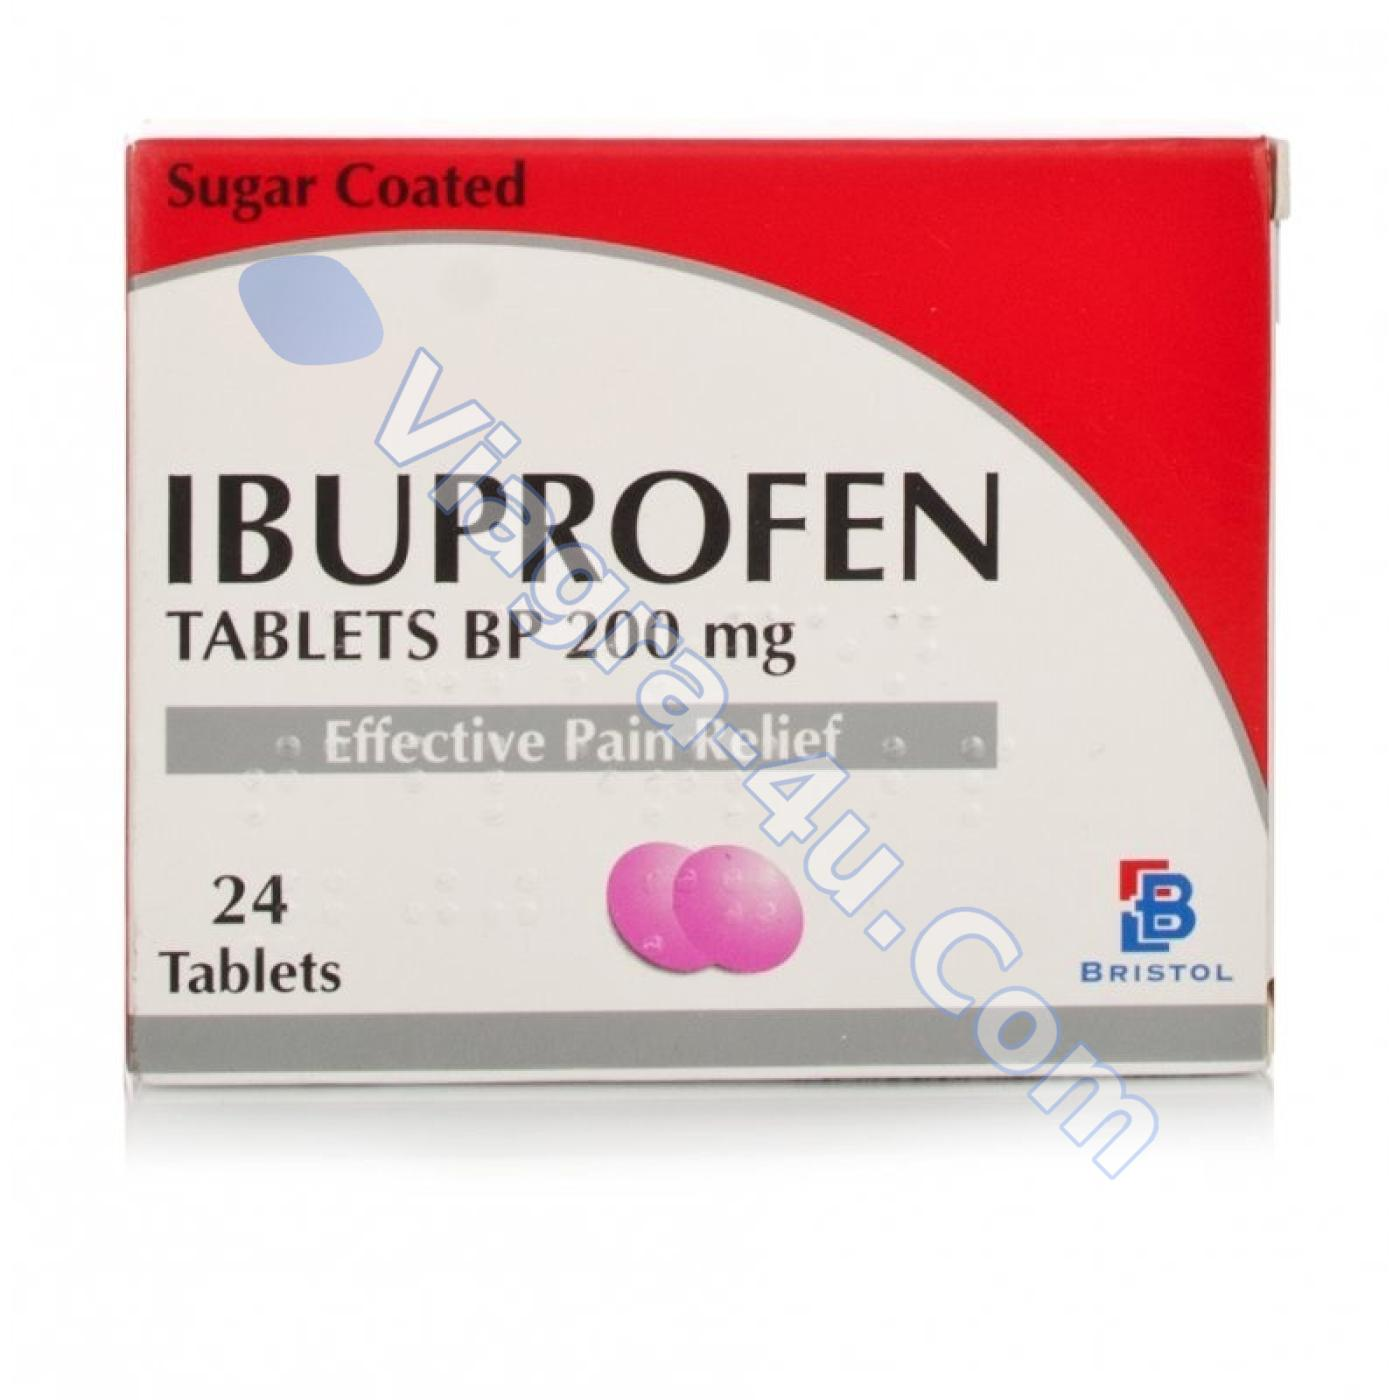 Viagra and ibuprofen